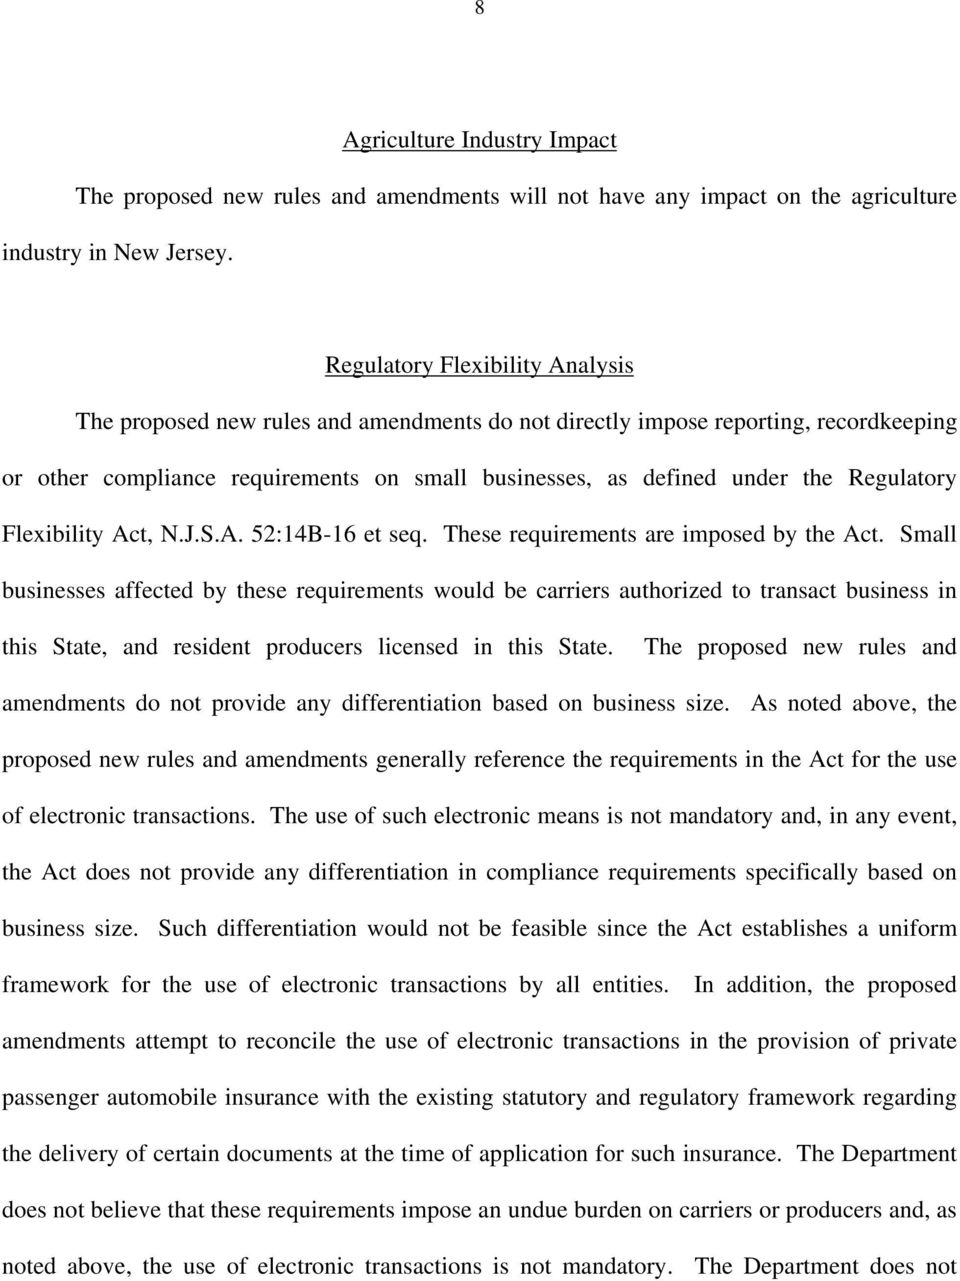 Regulatory Flexibility Act, N.J.S.A. 52:14B-16 et seq. These requirements are imposed by the Act.